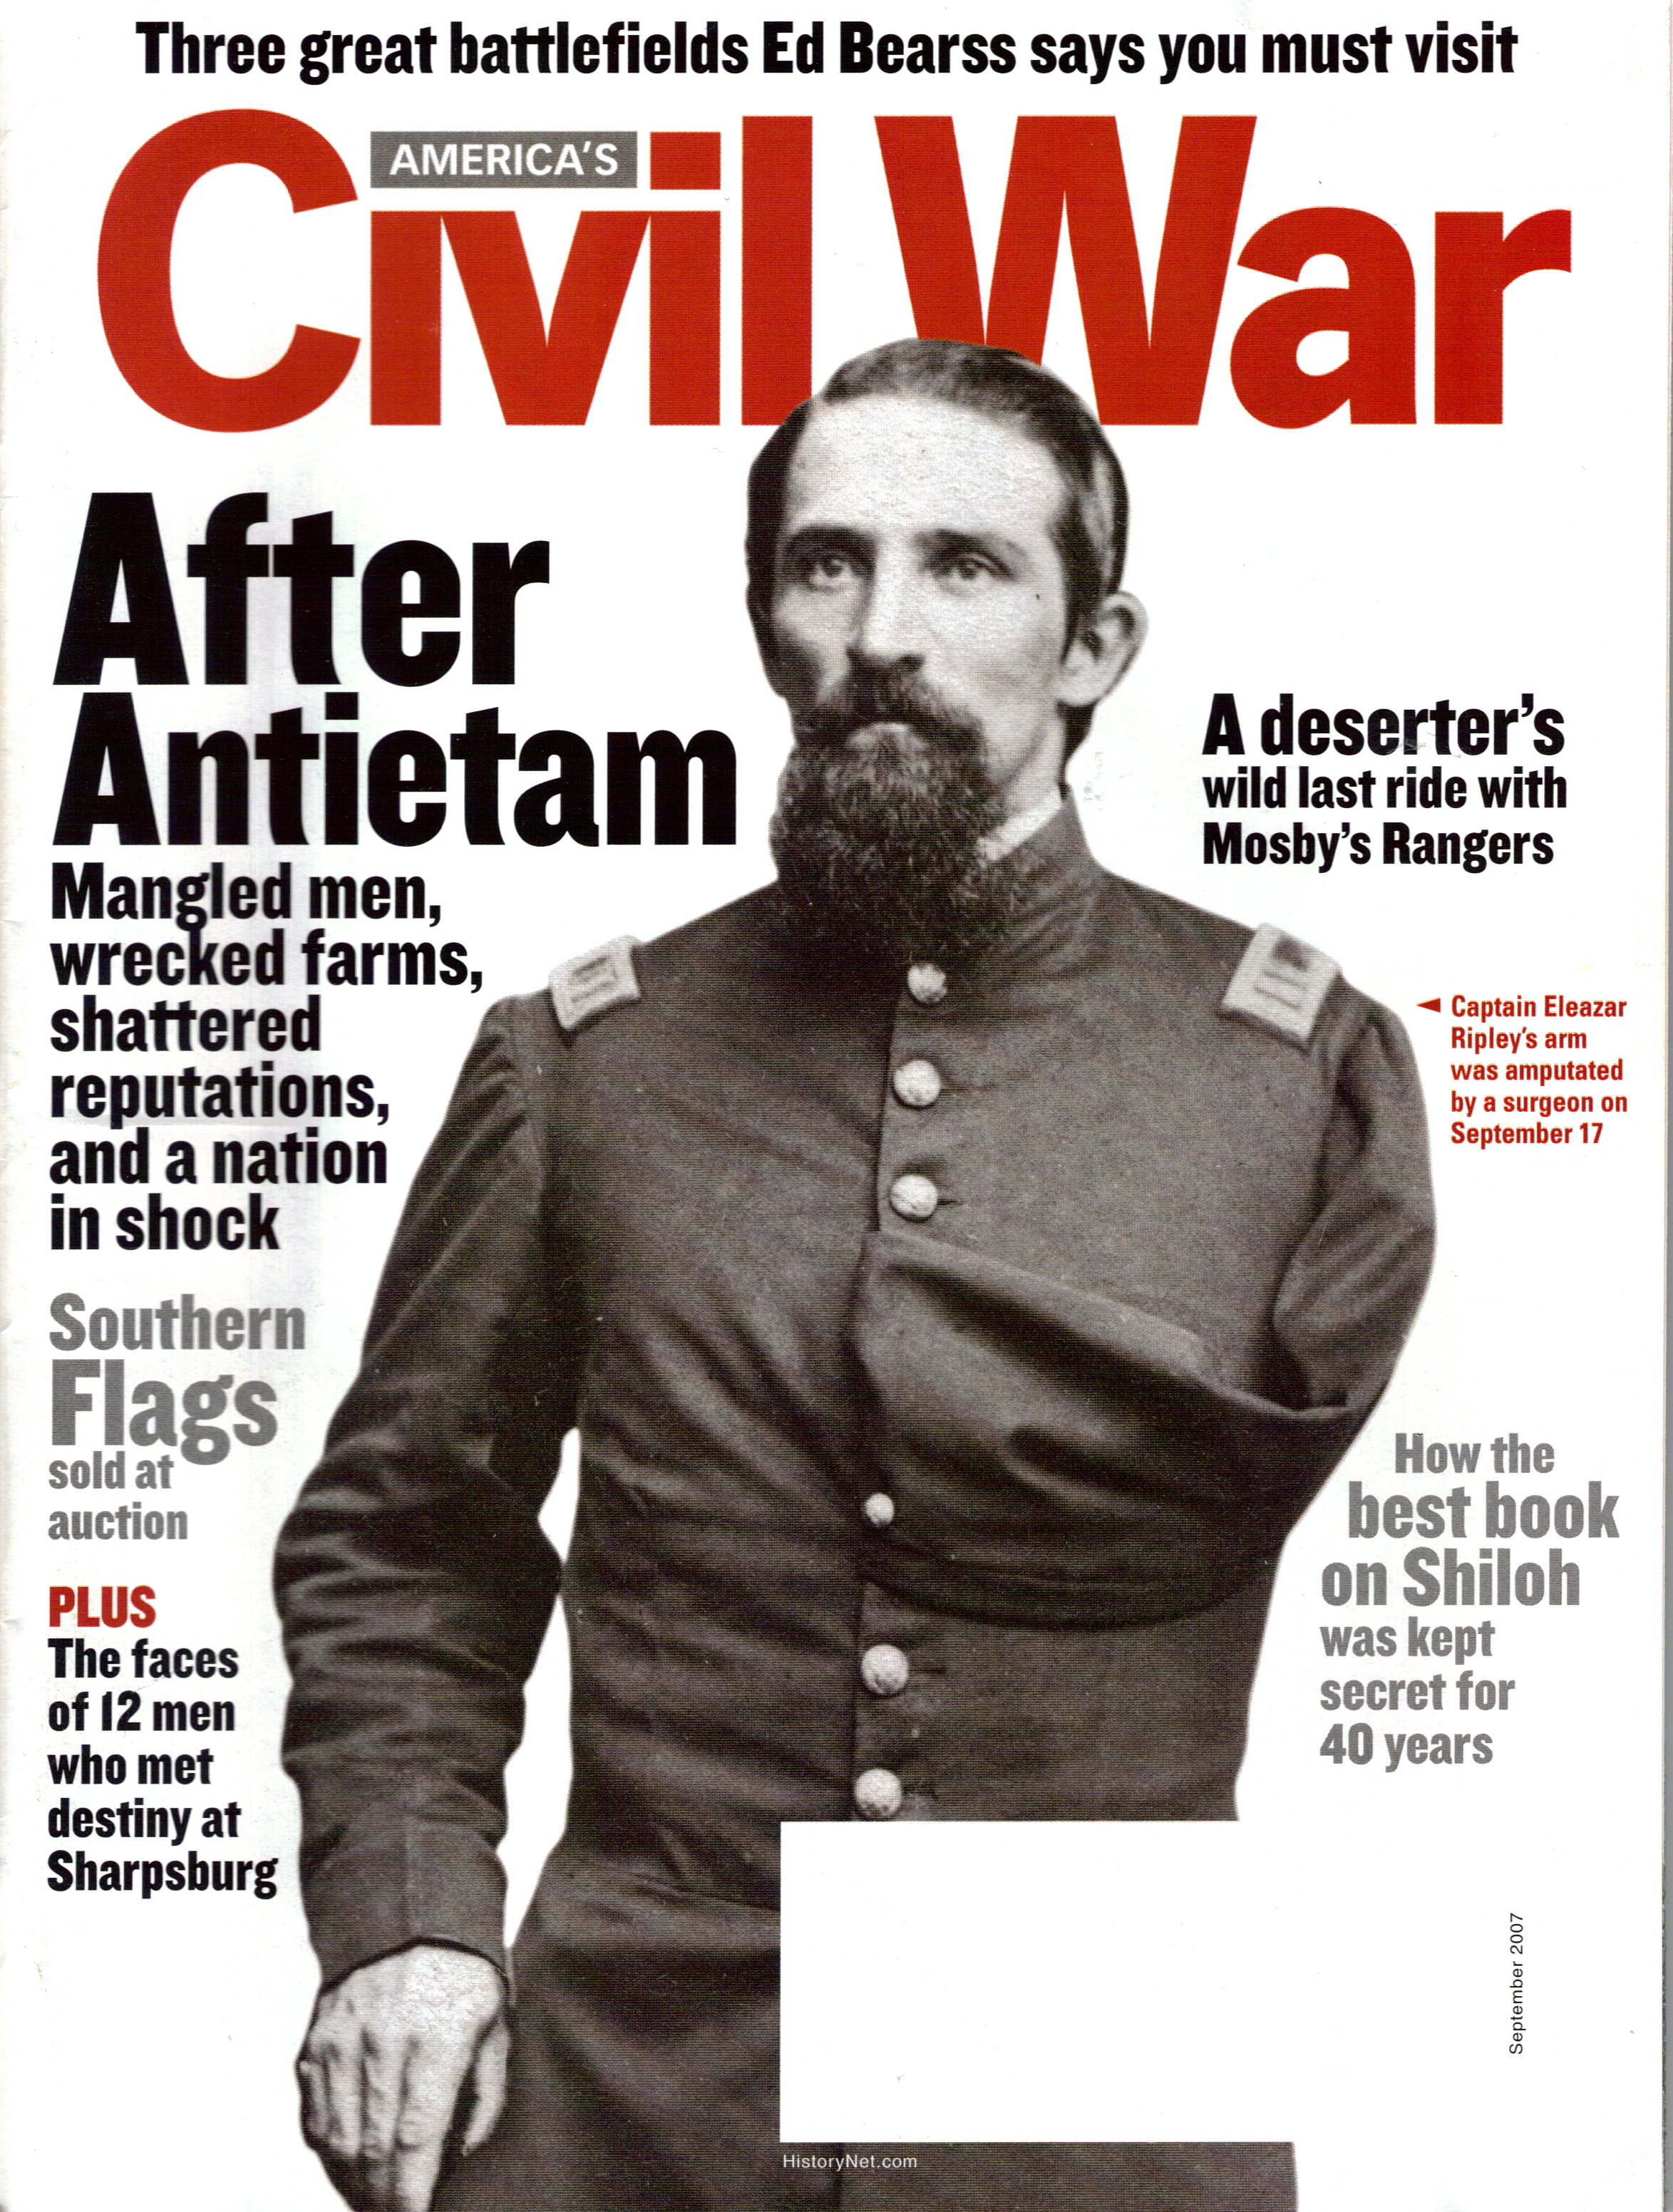 Americas Civil War, Volume 20, Number 4 (September 2007)